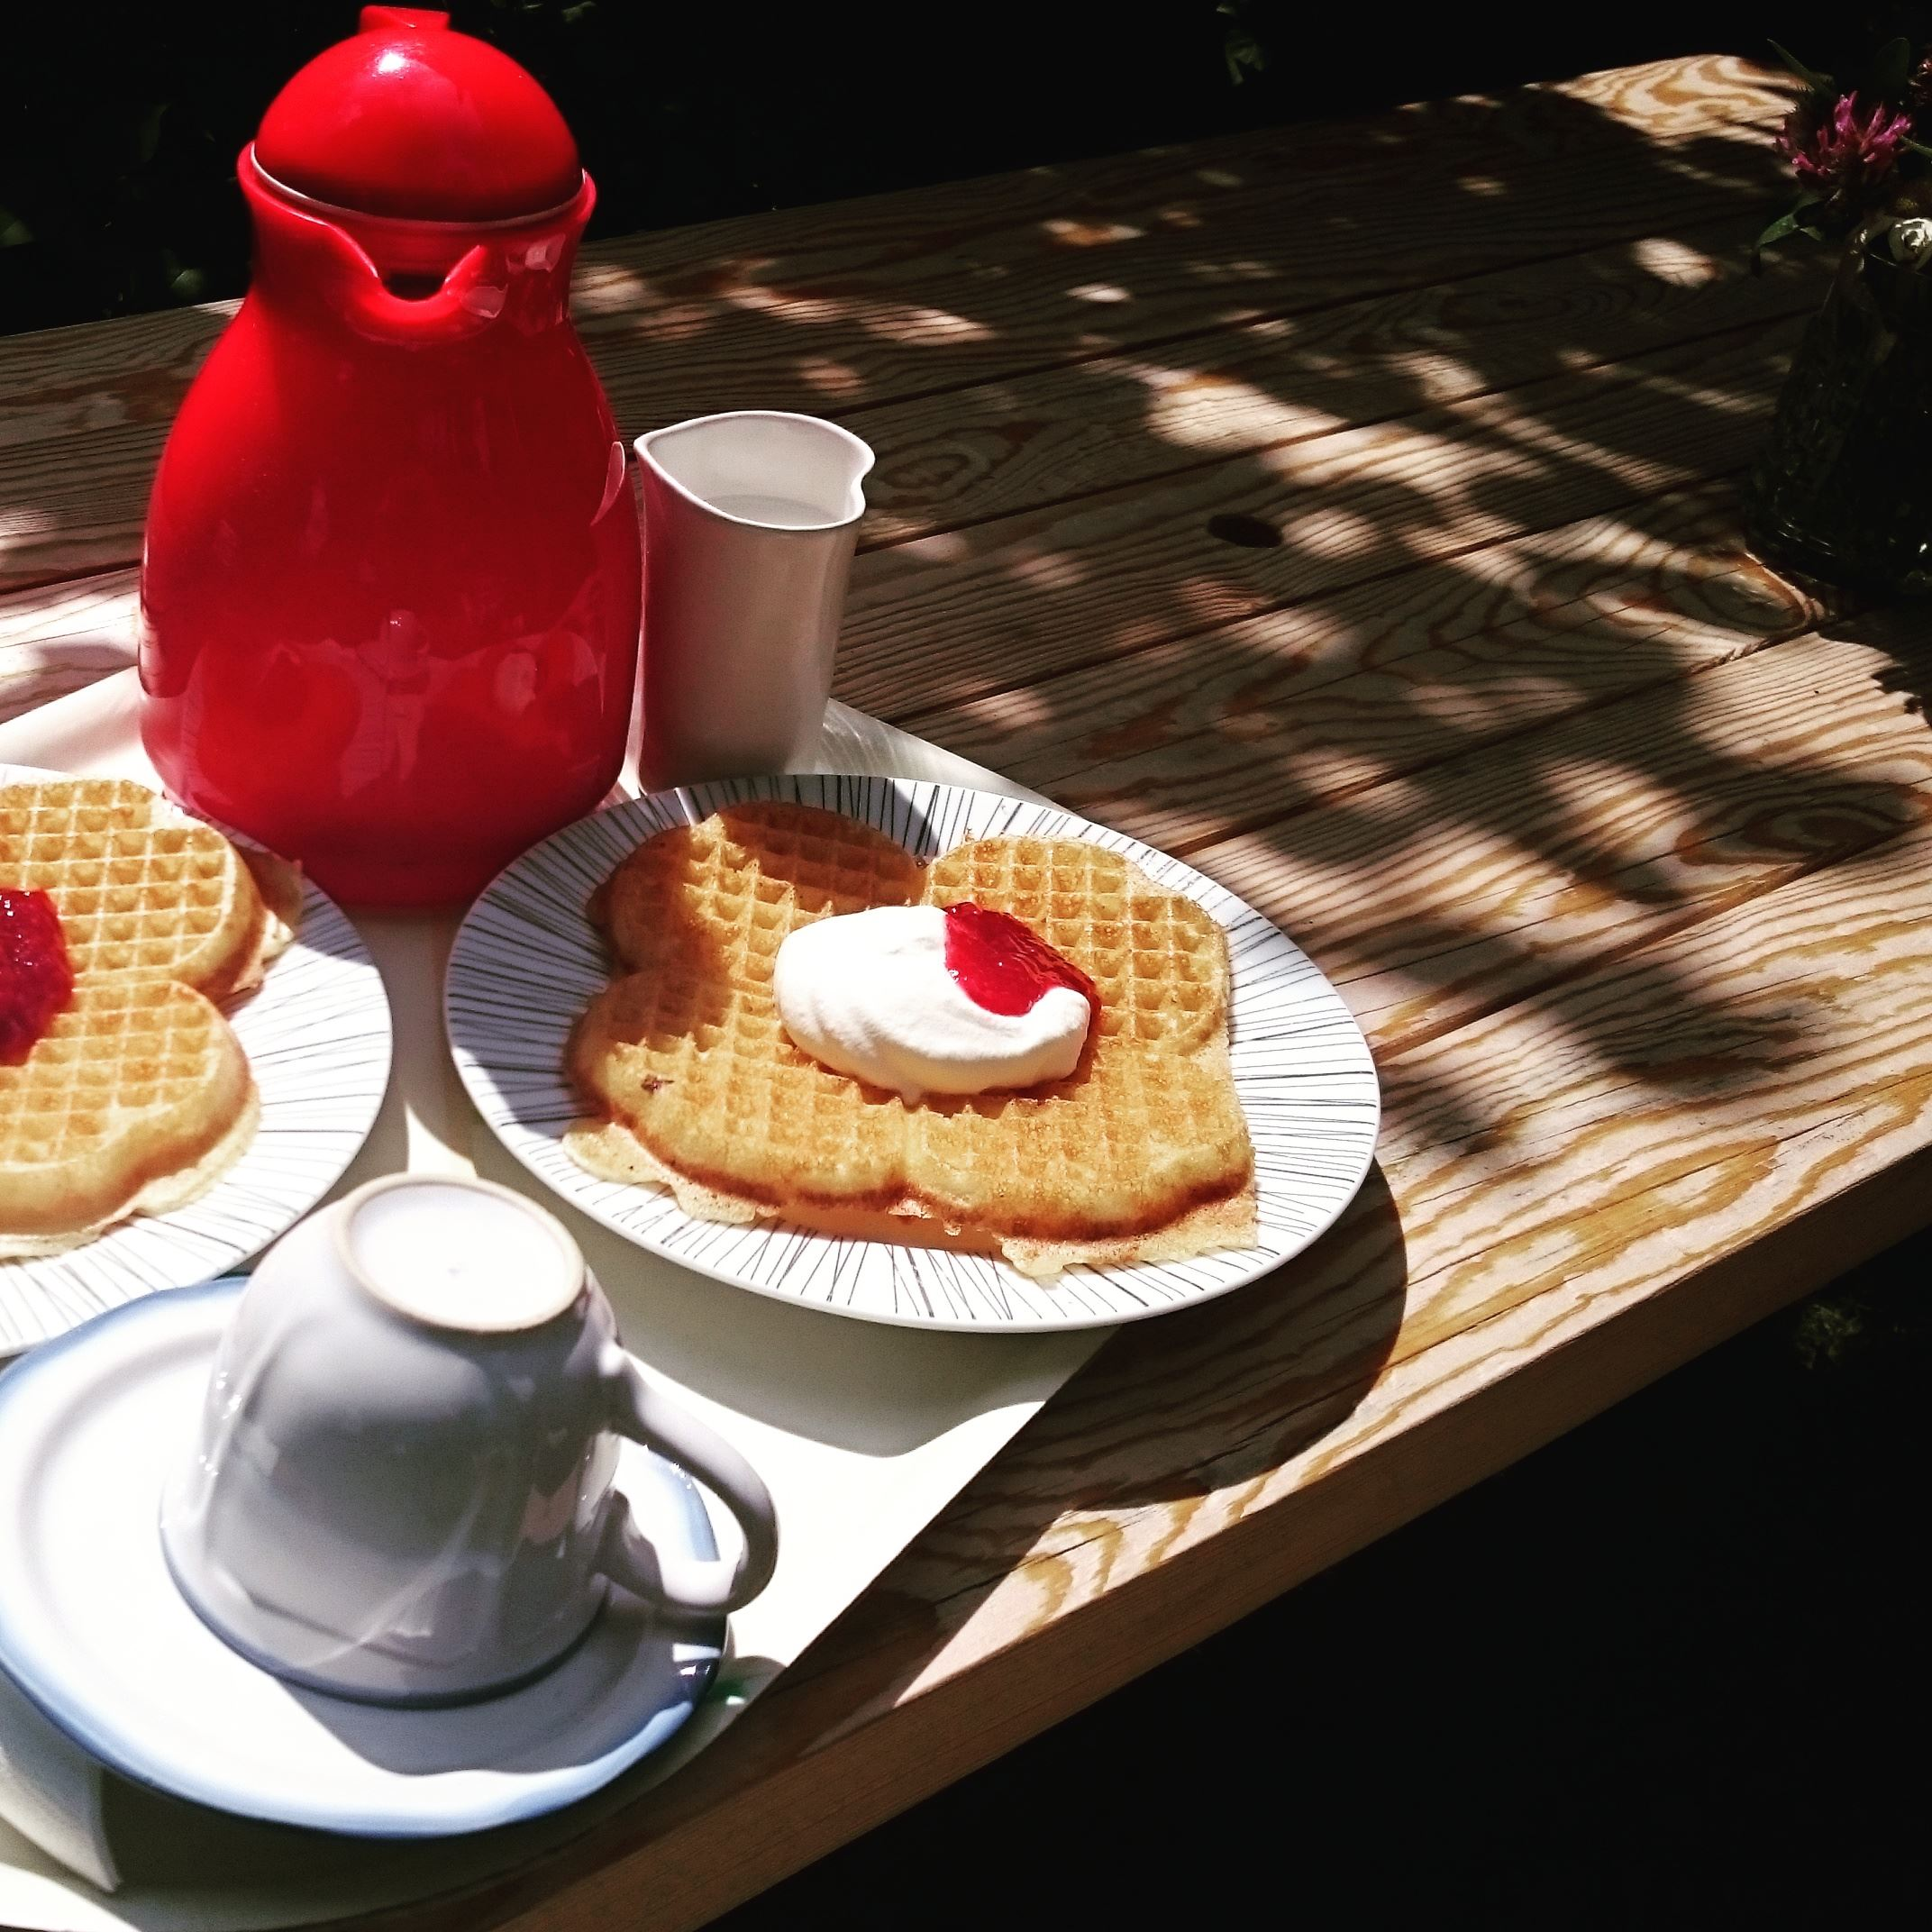 Waffle cafe at the folk museum in Rävemåla